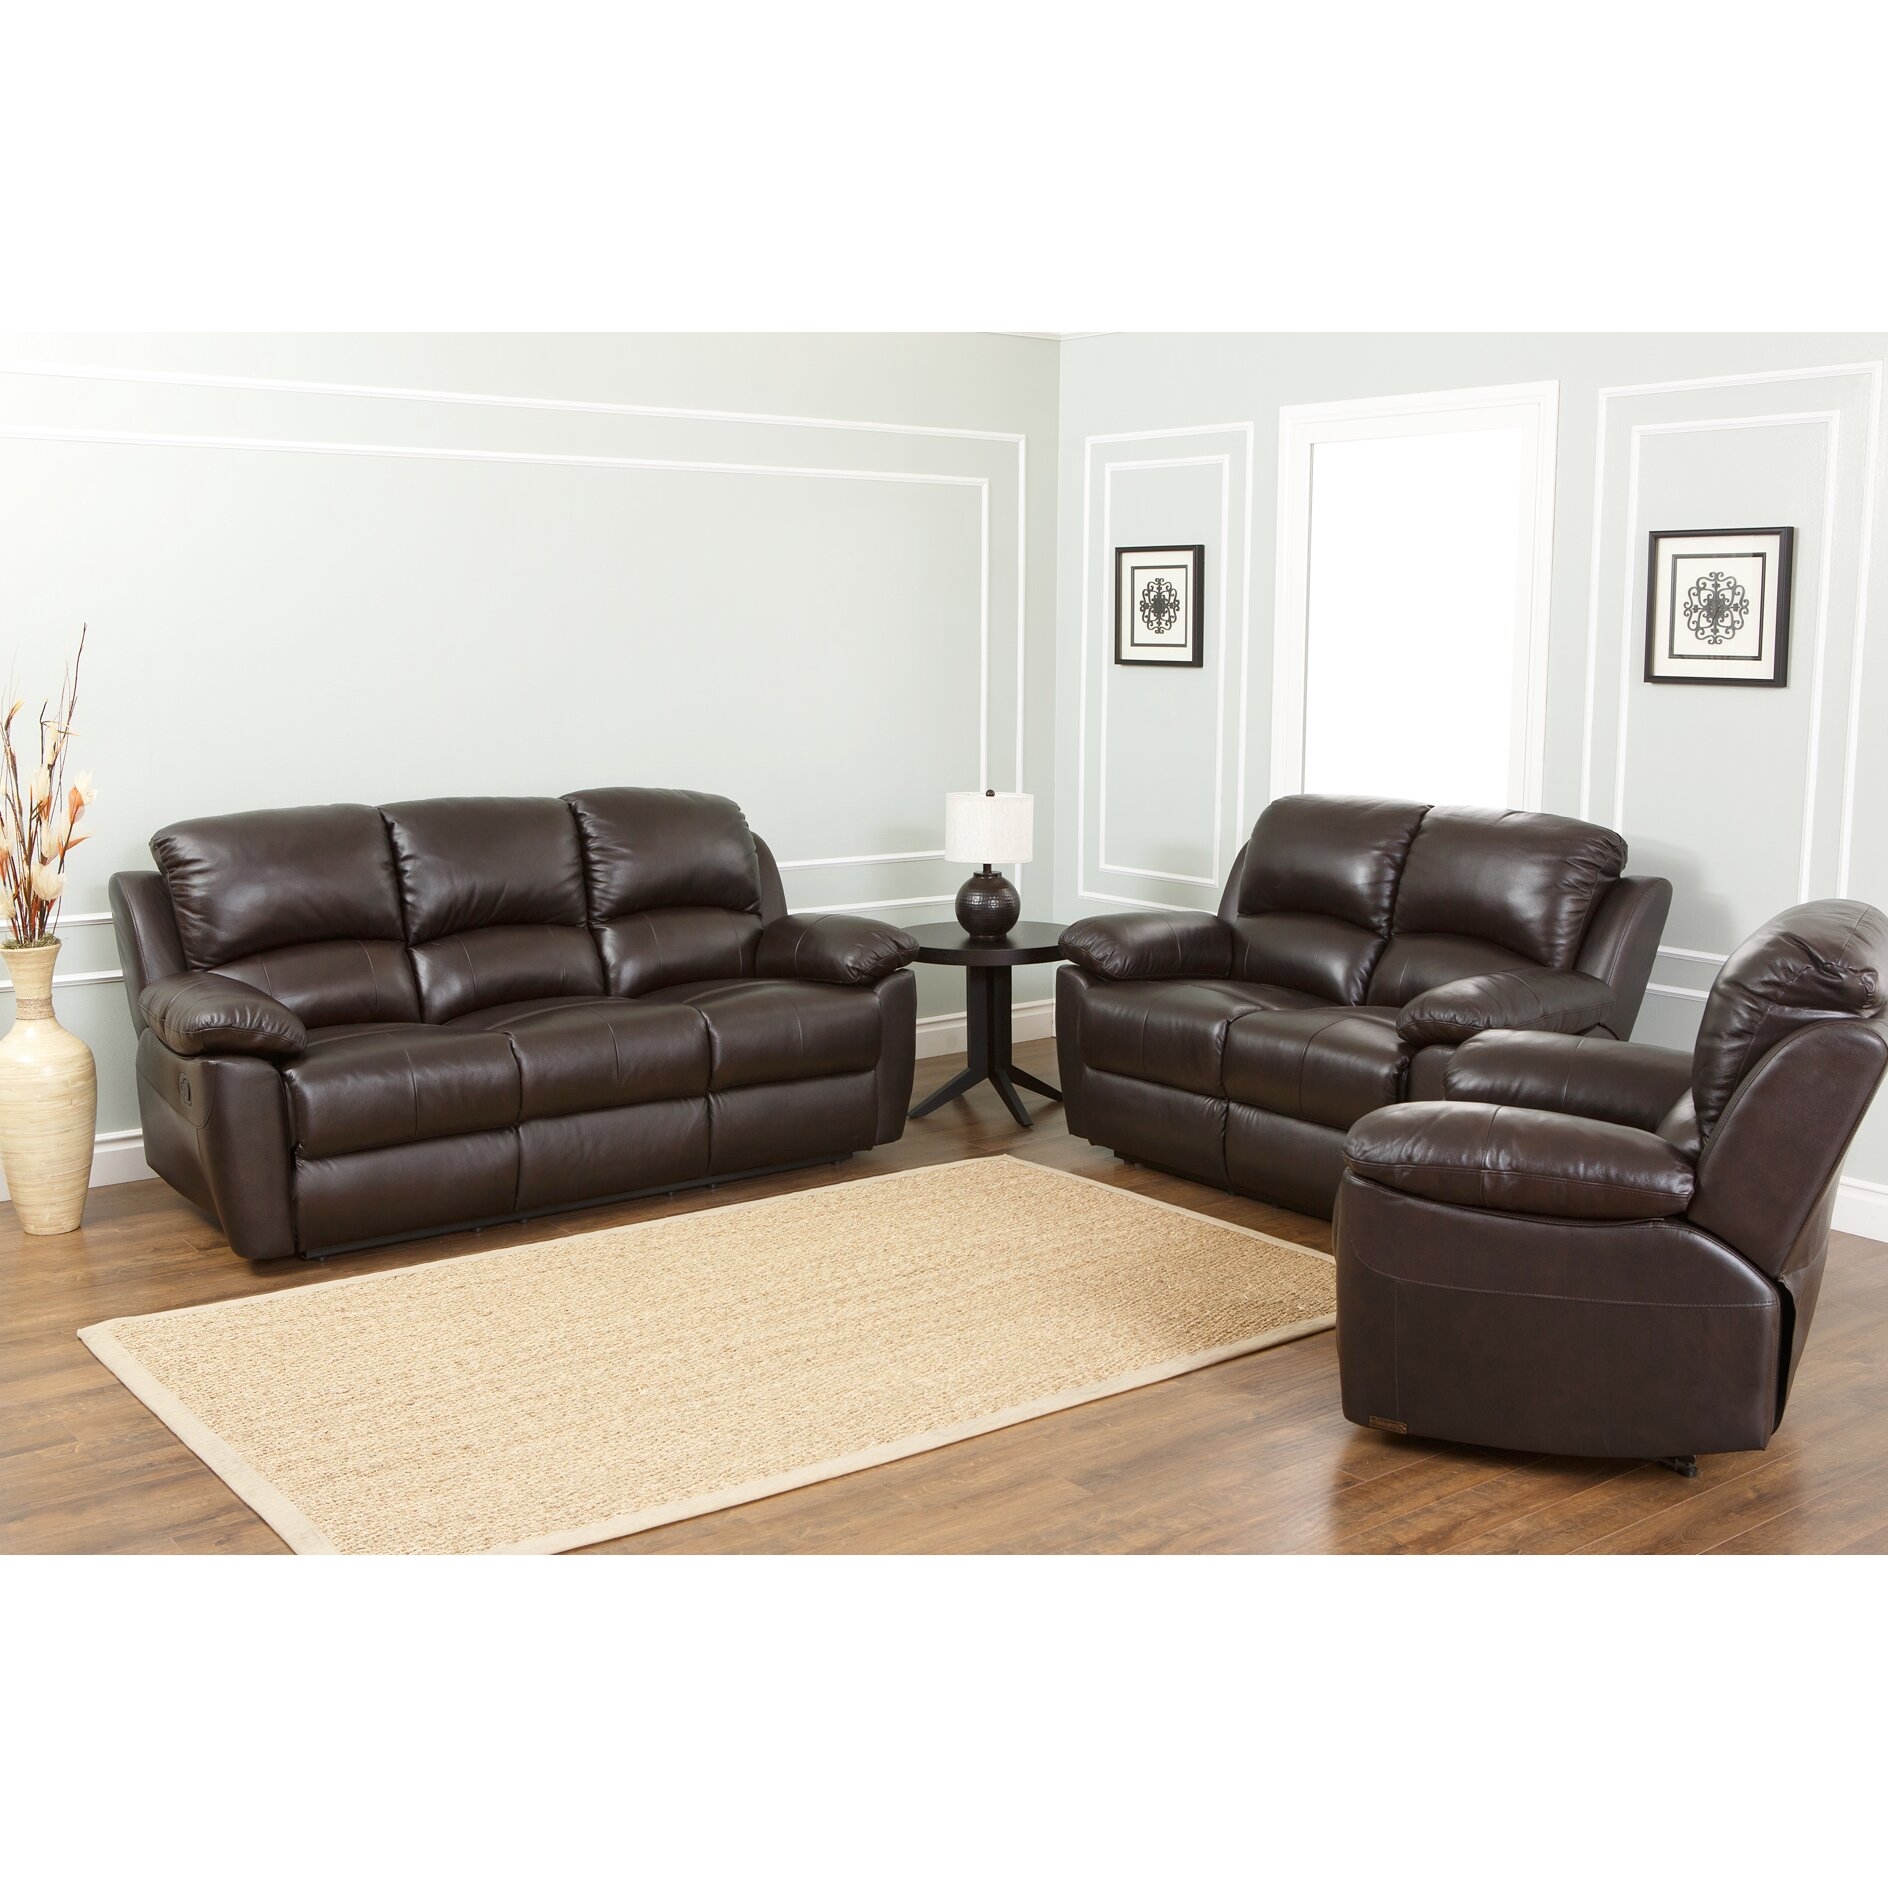 Abbyson living westwood leather recliner reviews wayfair for Abbyson living sedona leather chaise recliner